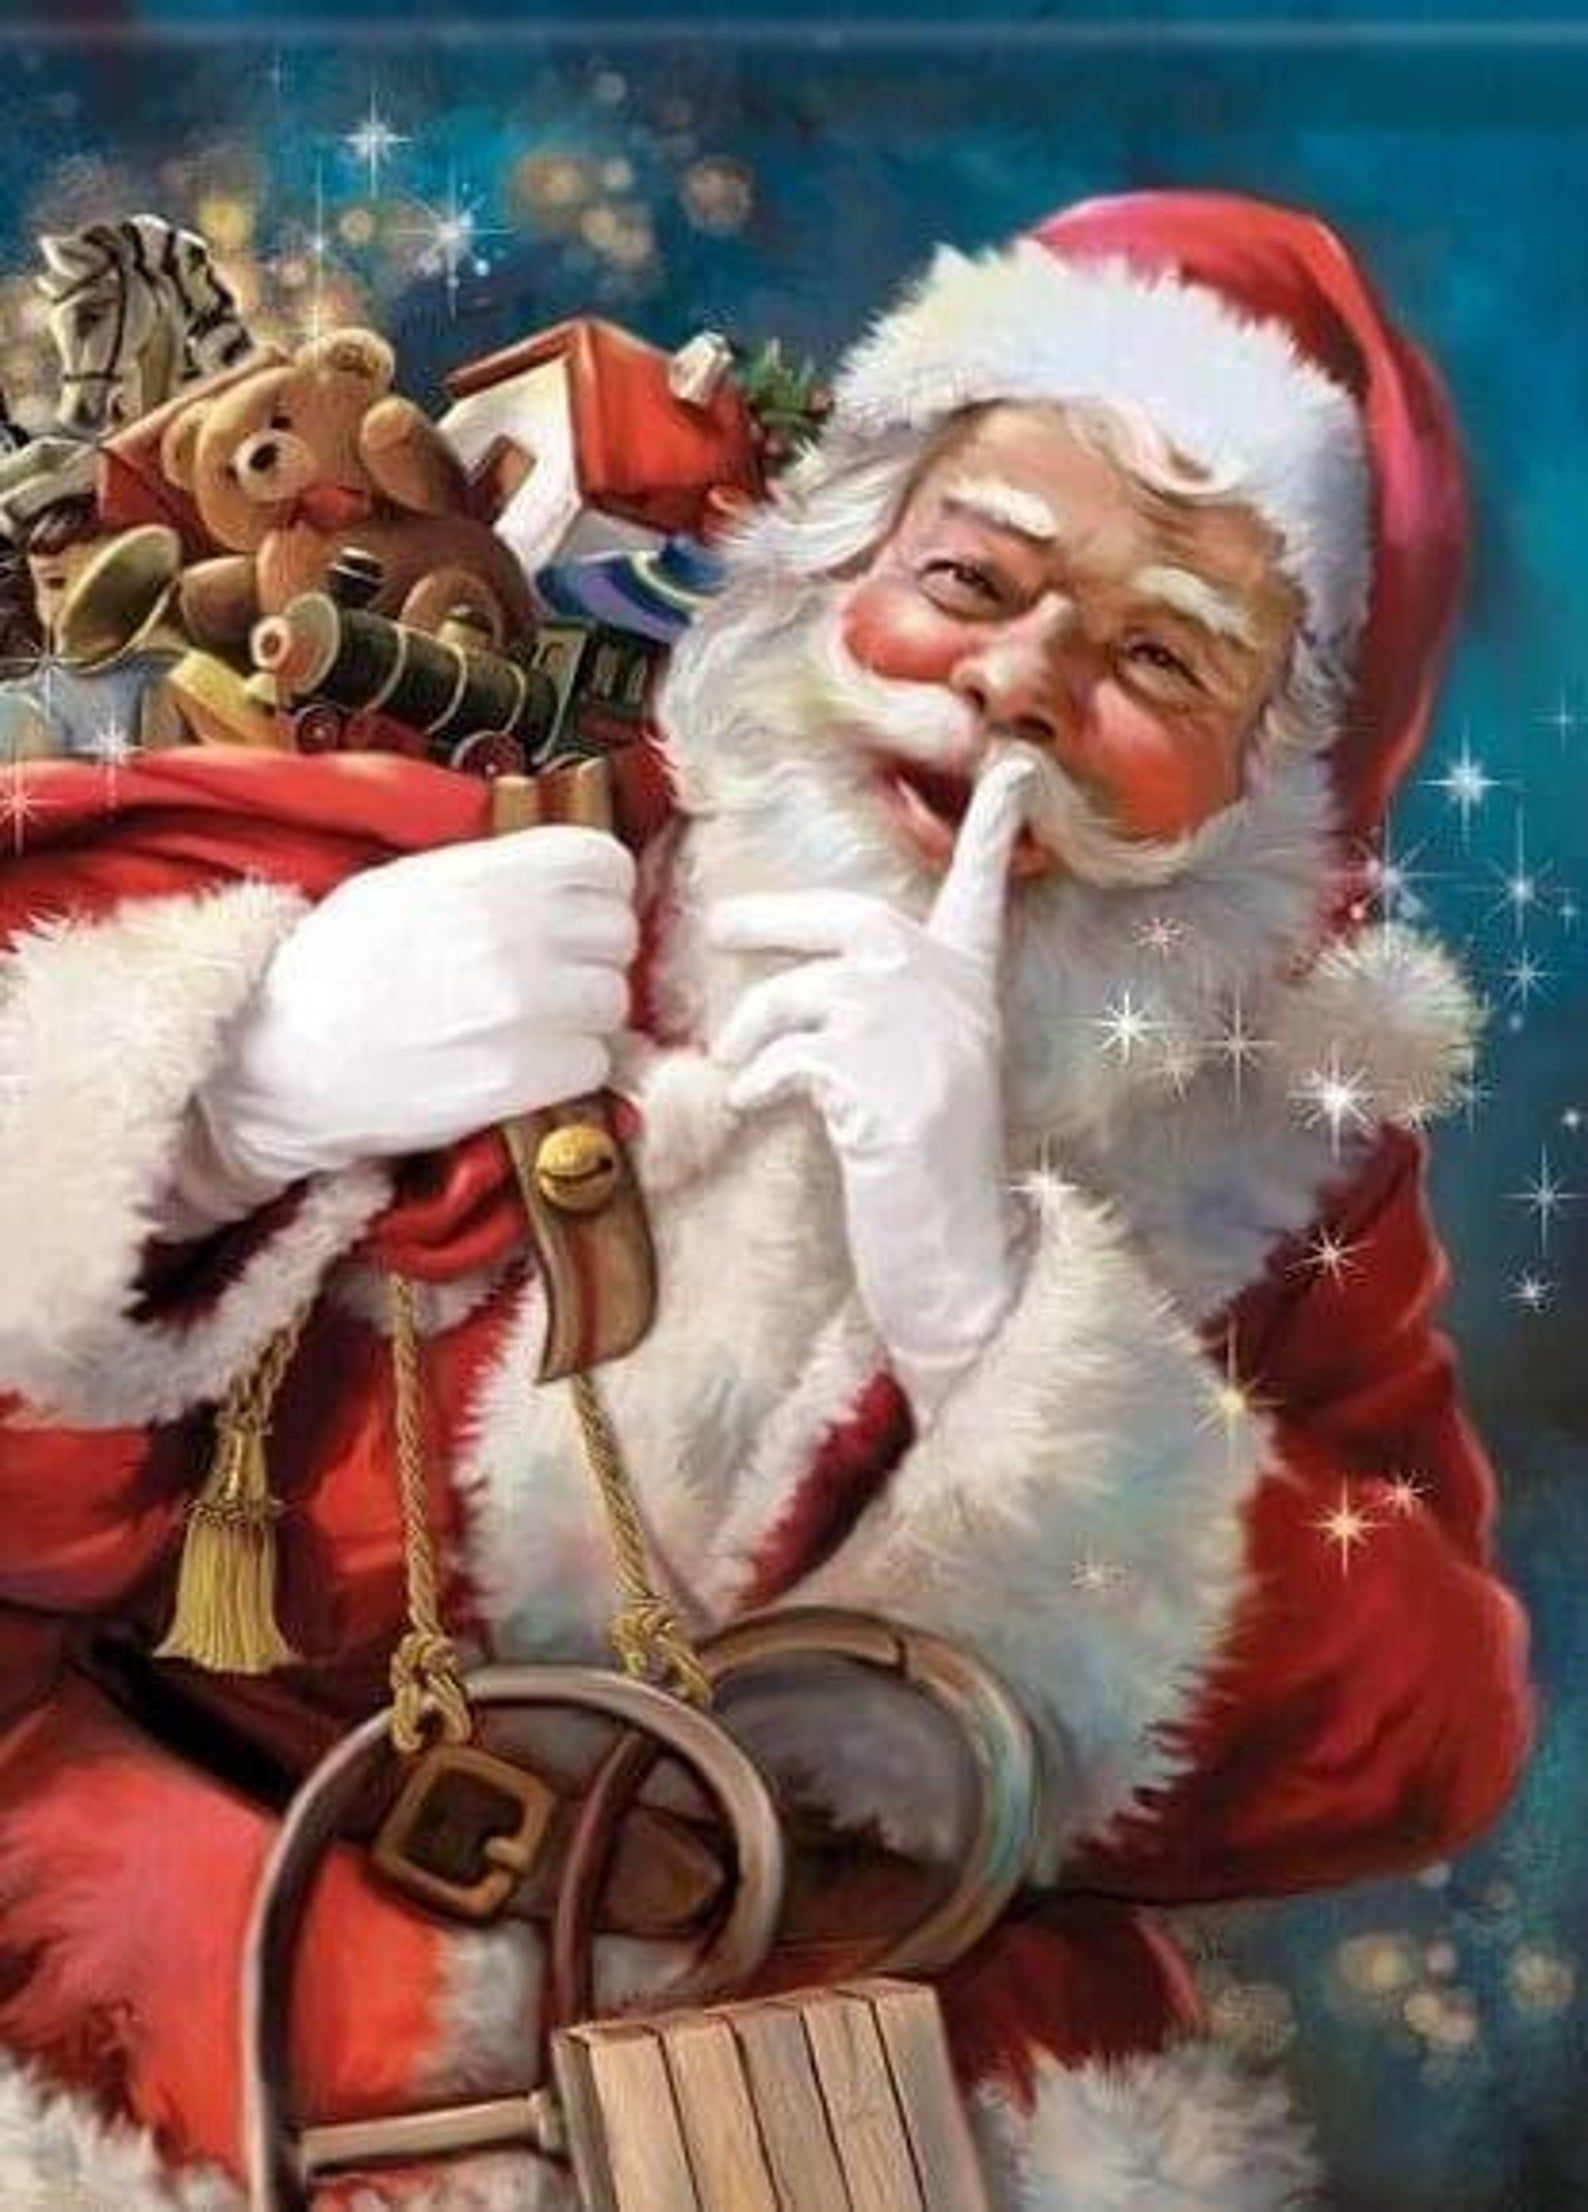 Santa Claus 5d Diy Diamond Painting Kit Full Drill Stick To Etsy In 2021 Christmas Scenes Santa Claus Pictures Christmas Flag